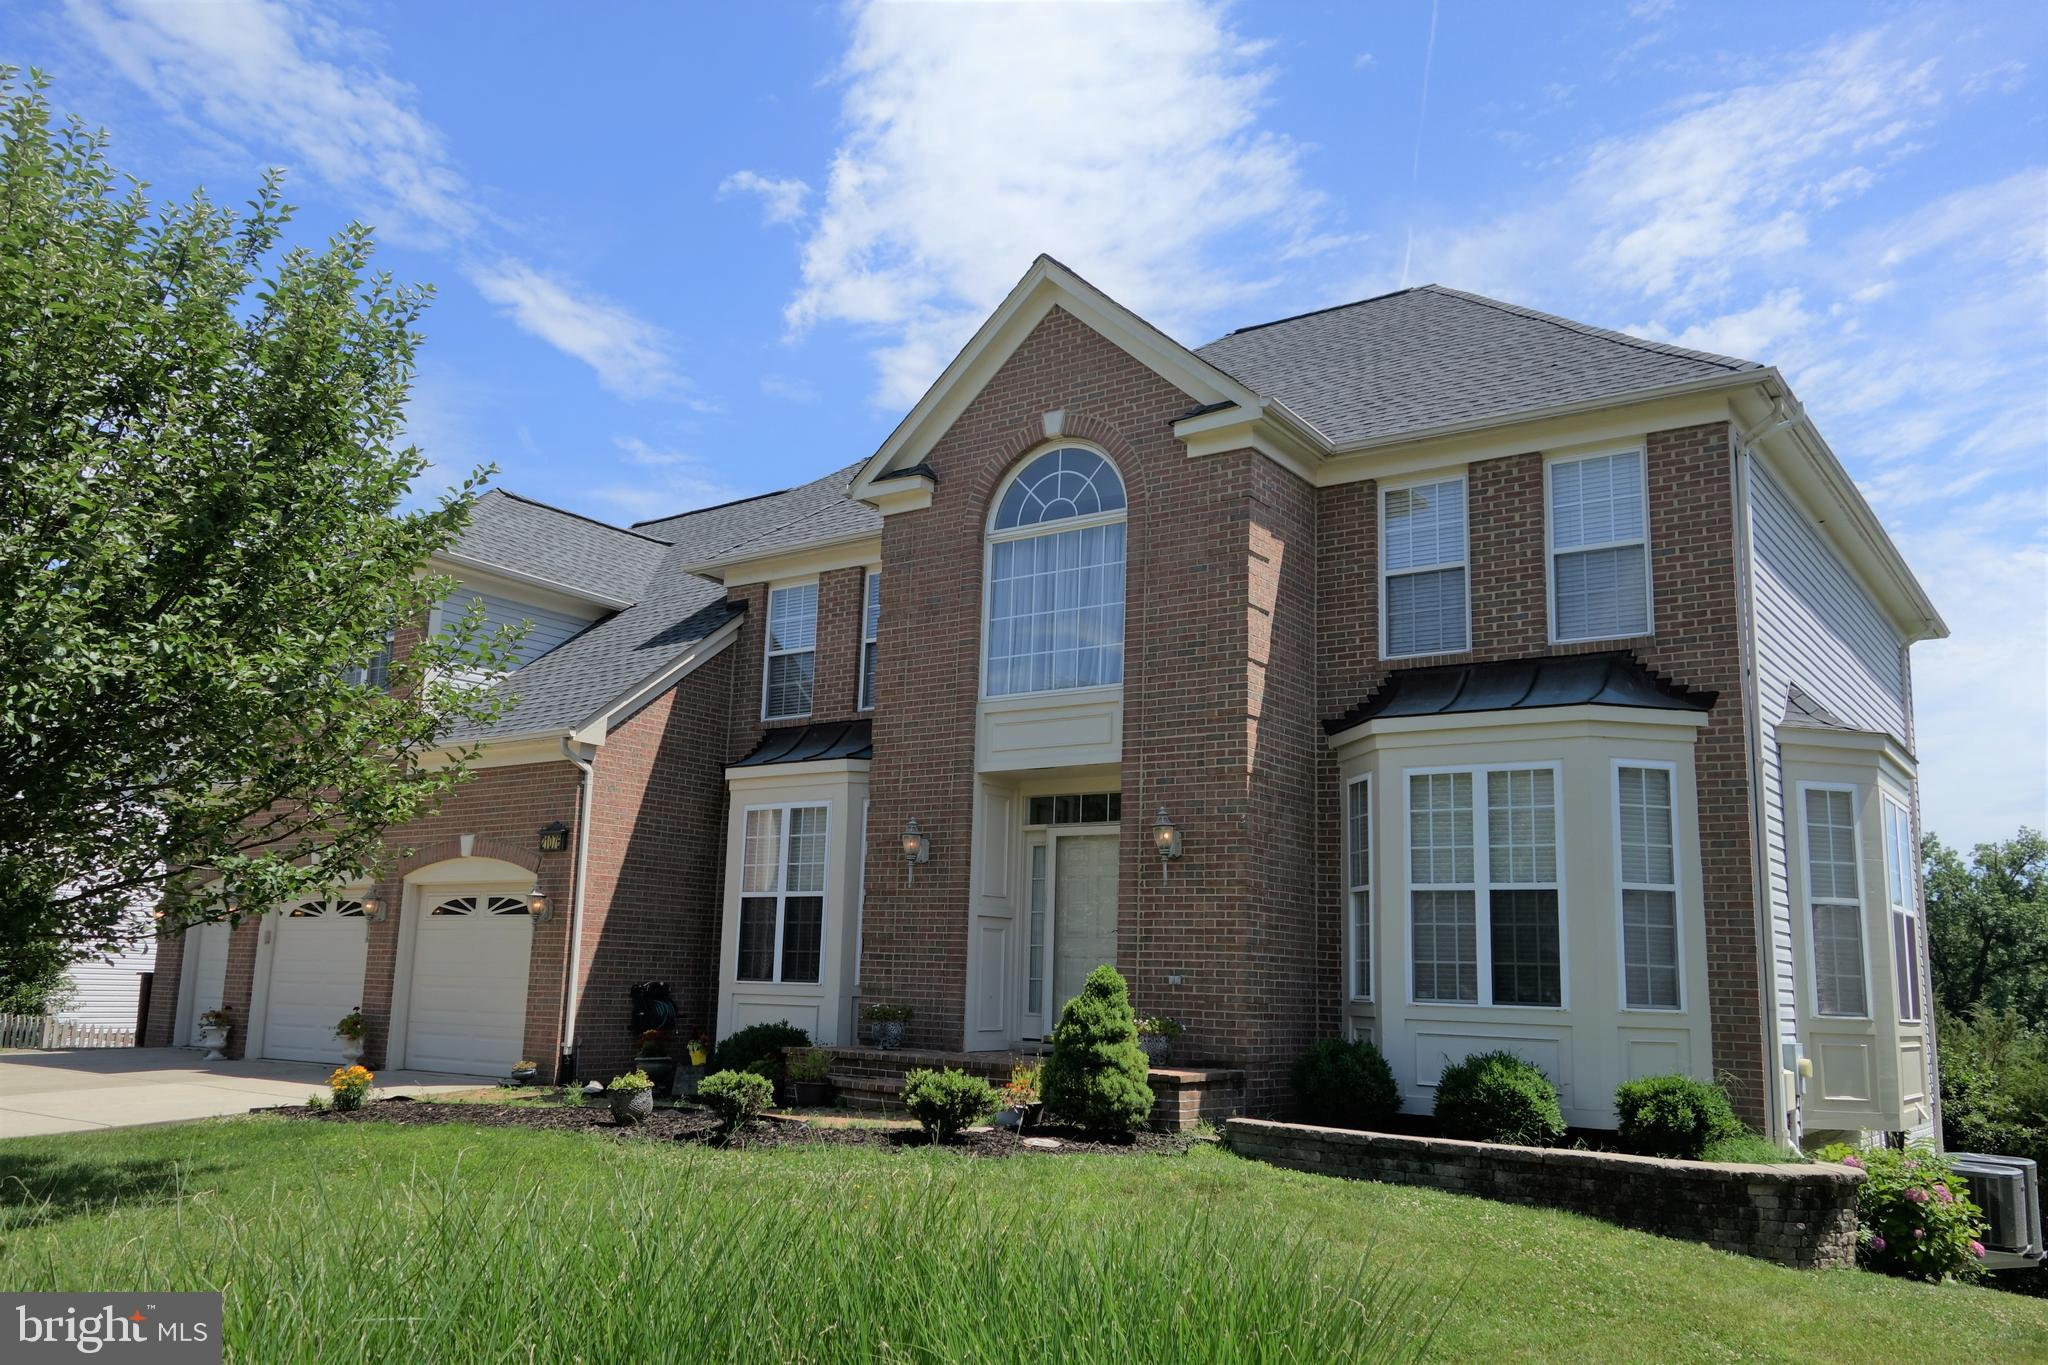 20147 5 Bedroom Home For Sale